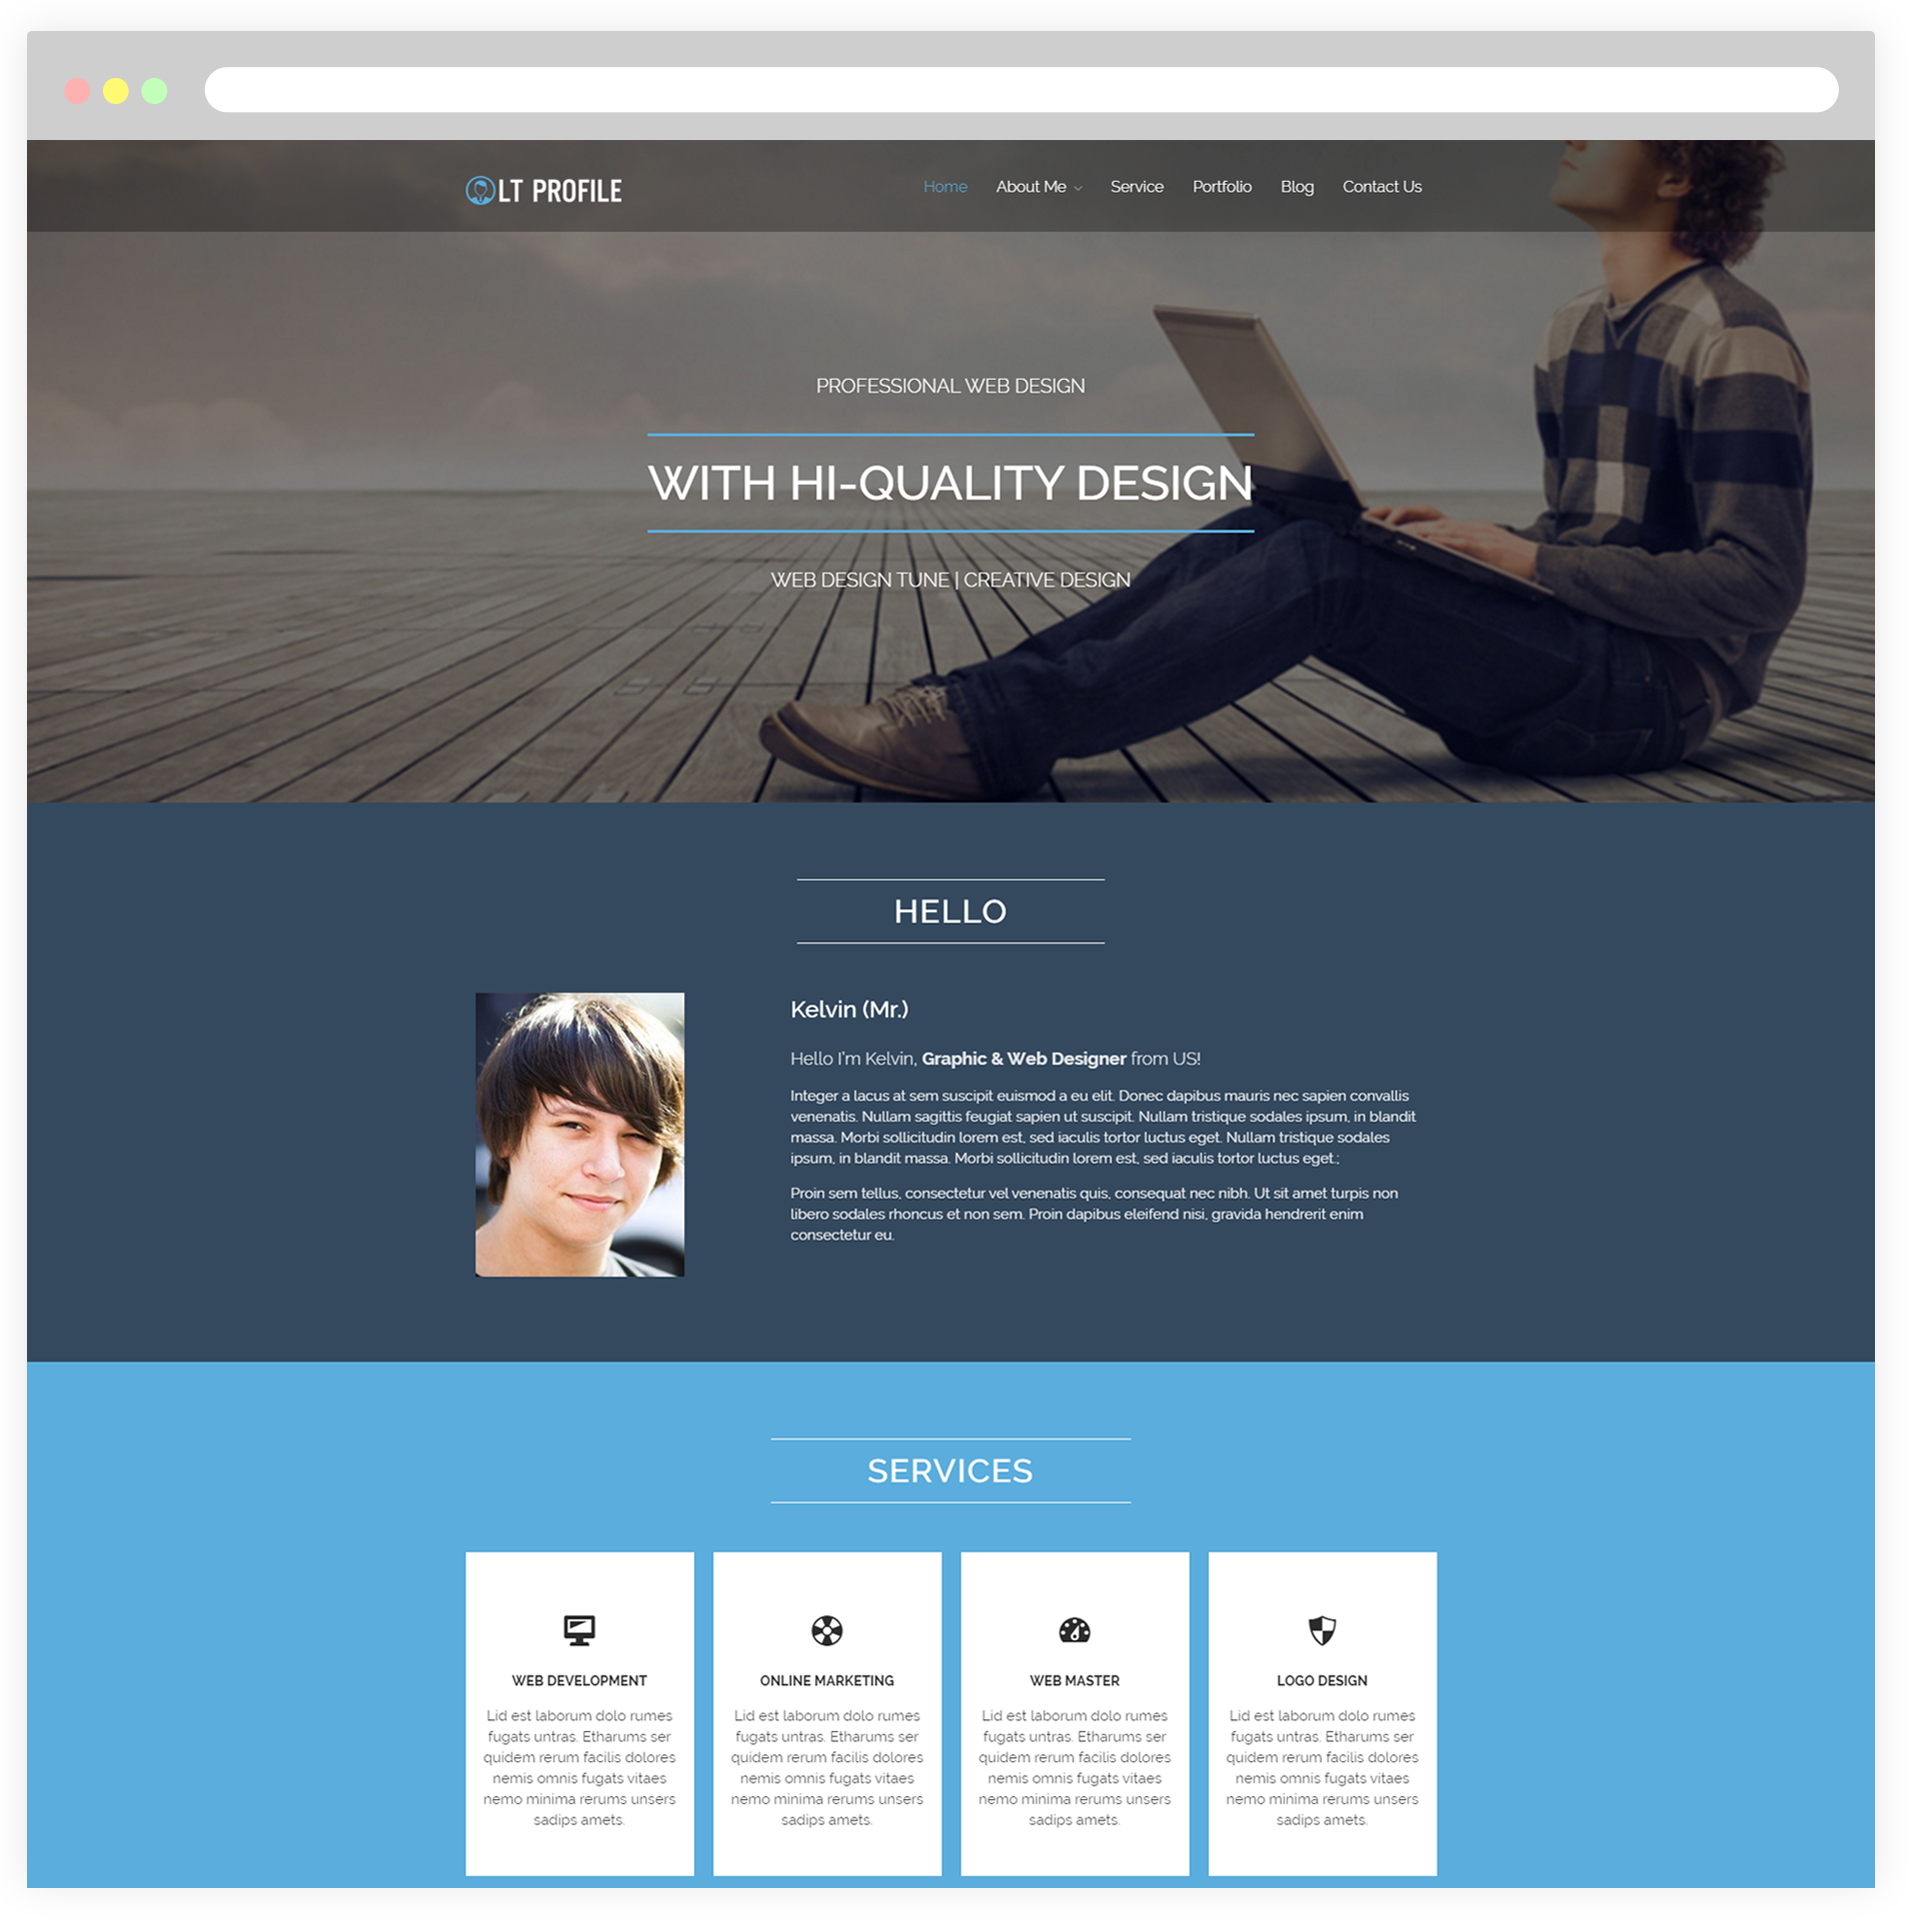 Lt profile free responsive cv profile wordpress theme for Personal profile design templates